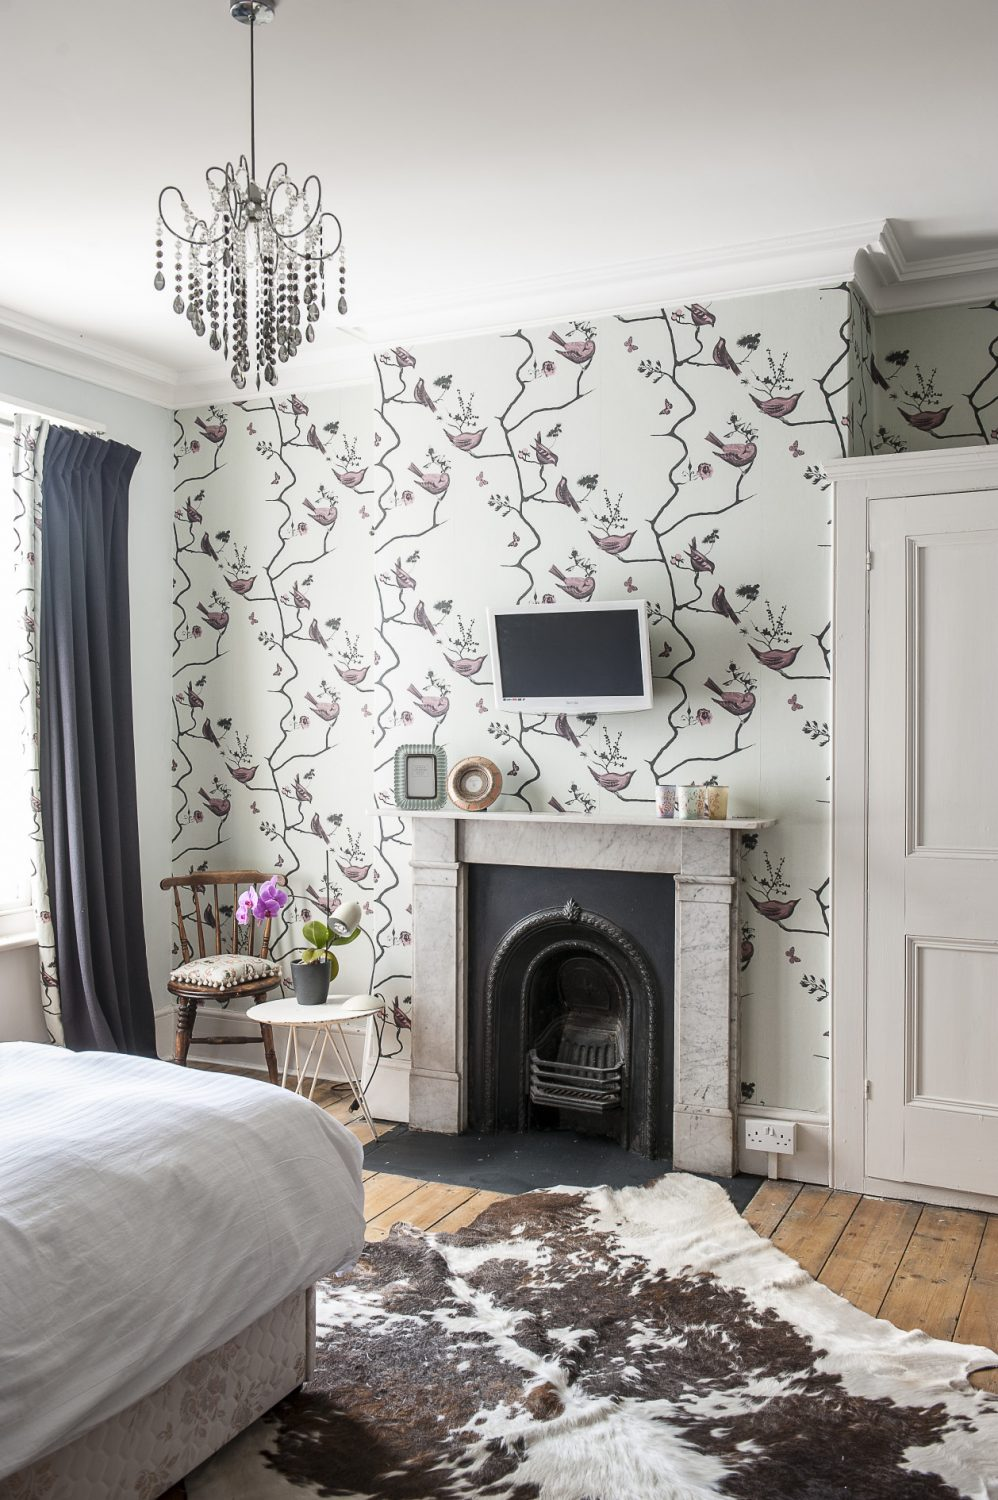 Annette's daughter's room is beautifully tidy. The treatment in this room is simple, but effective. The original fireplace is set off well in a wall covered with 'Pavilion Birds' wallpaper by St. Leonards designer Louise Body